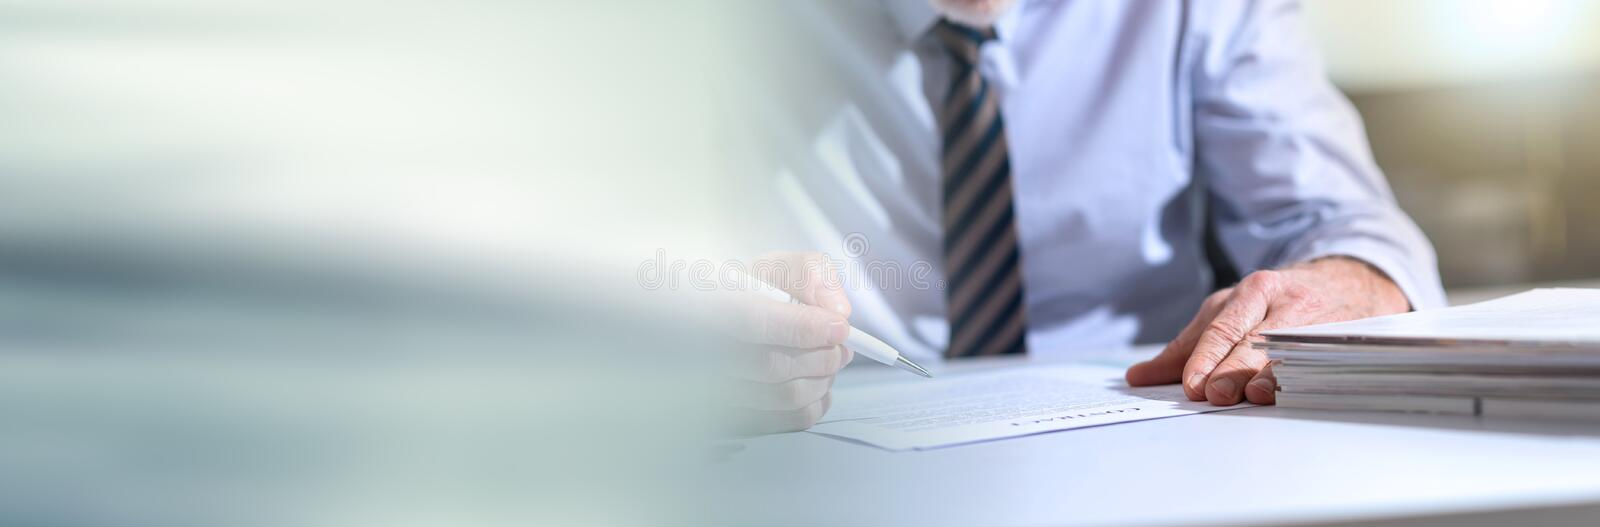 Businessman checking a document. panoramic banner royalty free stock images